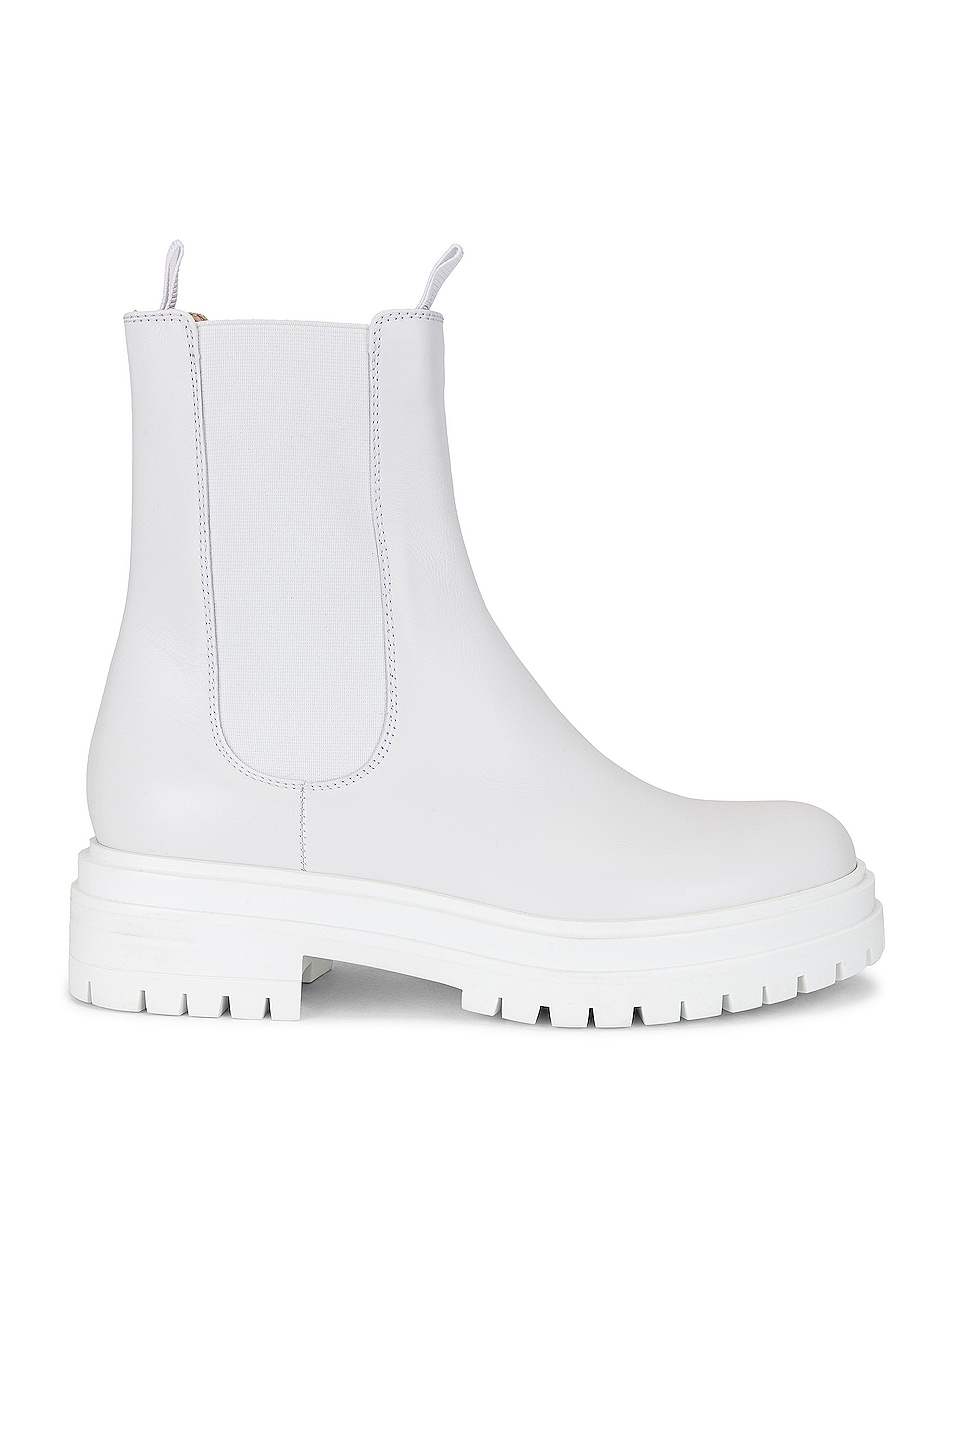 Image 1 of Gianvito Rossi Ankle Boots in White